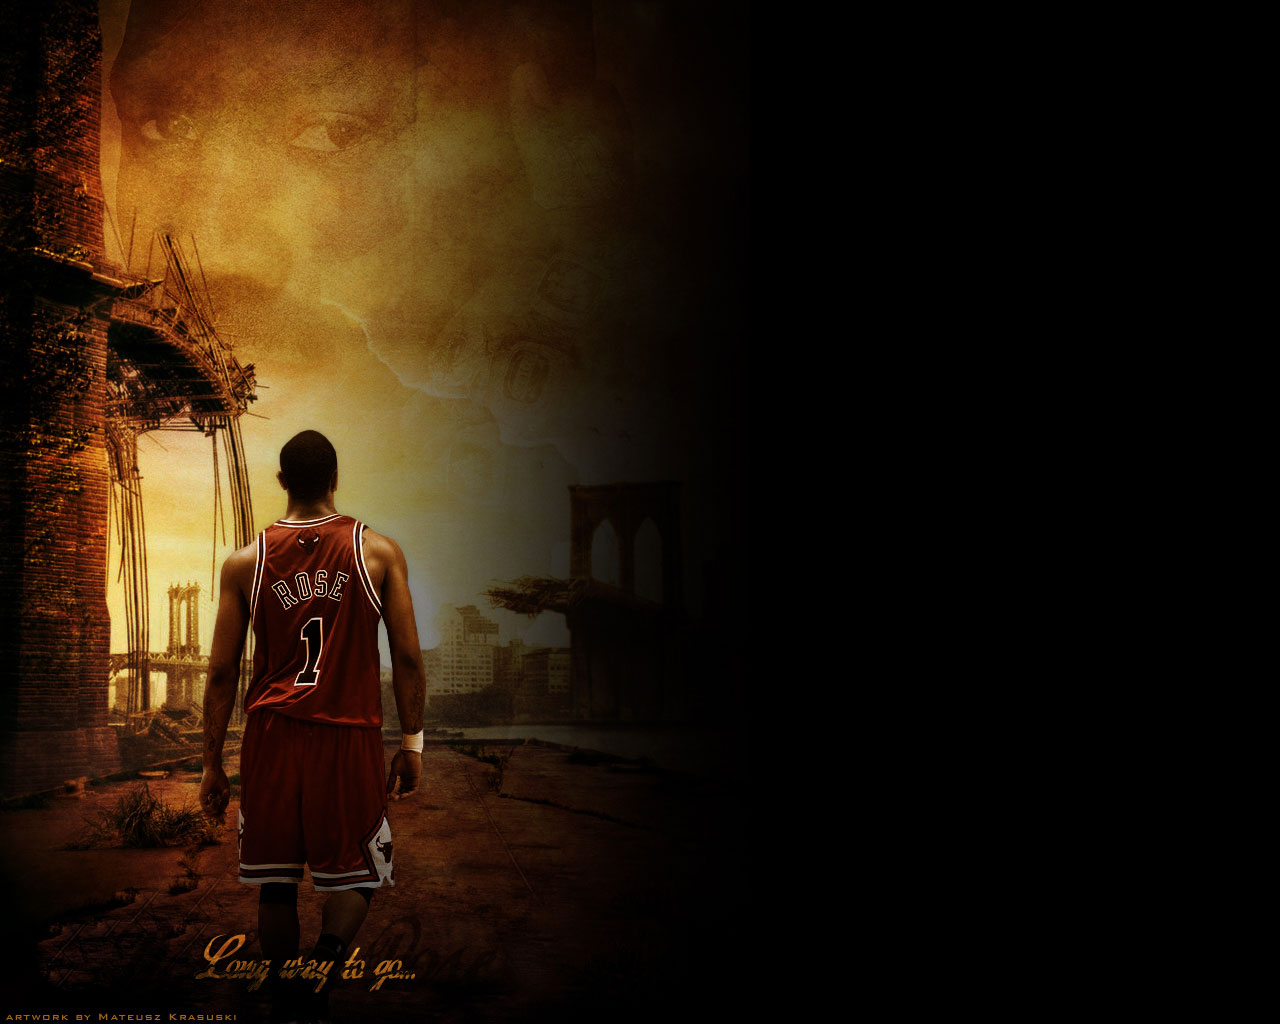 Sports Desktop Wallpapers for HD Widescreen and Mobile Page 1280x1024